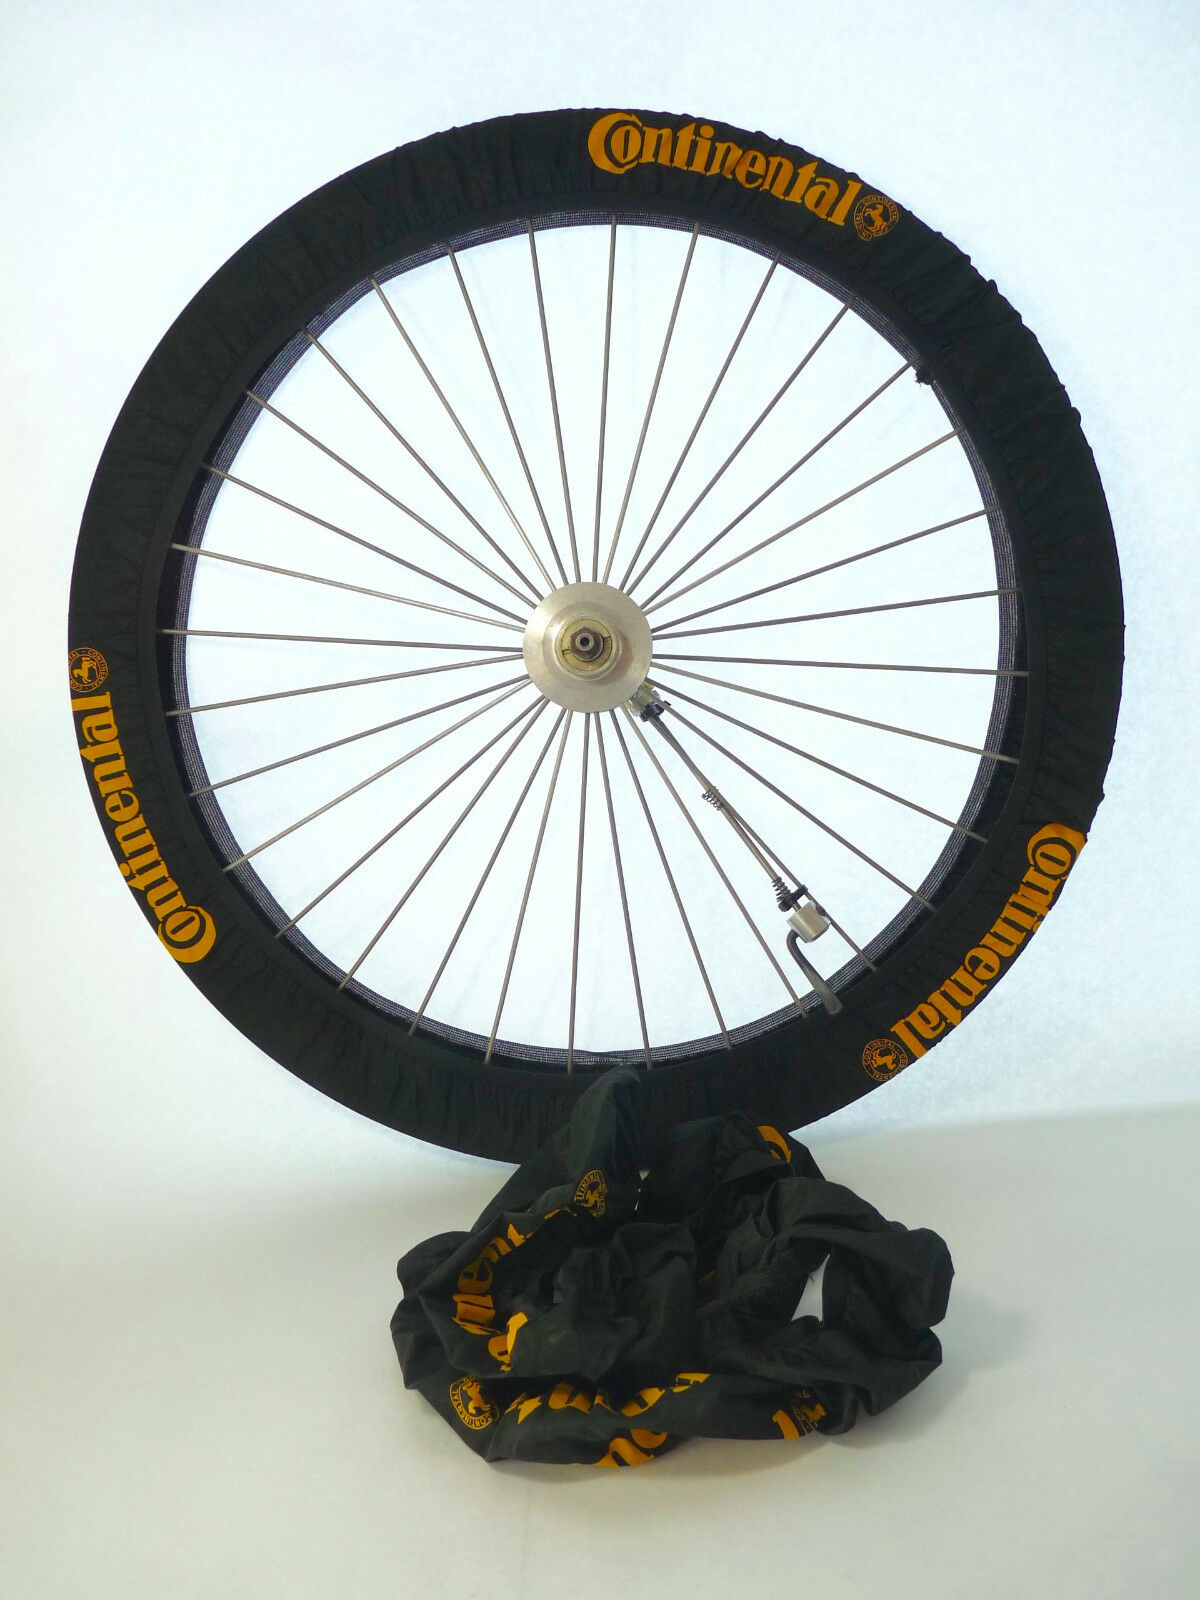 Continental wheel covers tire pair Vintage road Bicycle tubular or clincher NOS